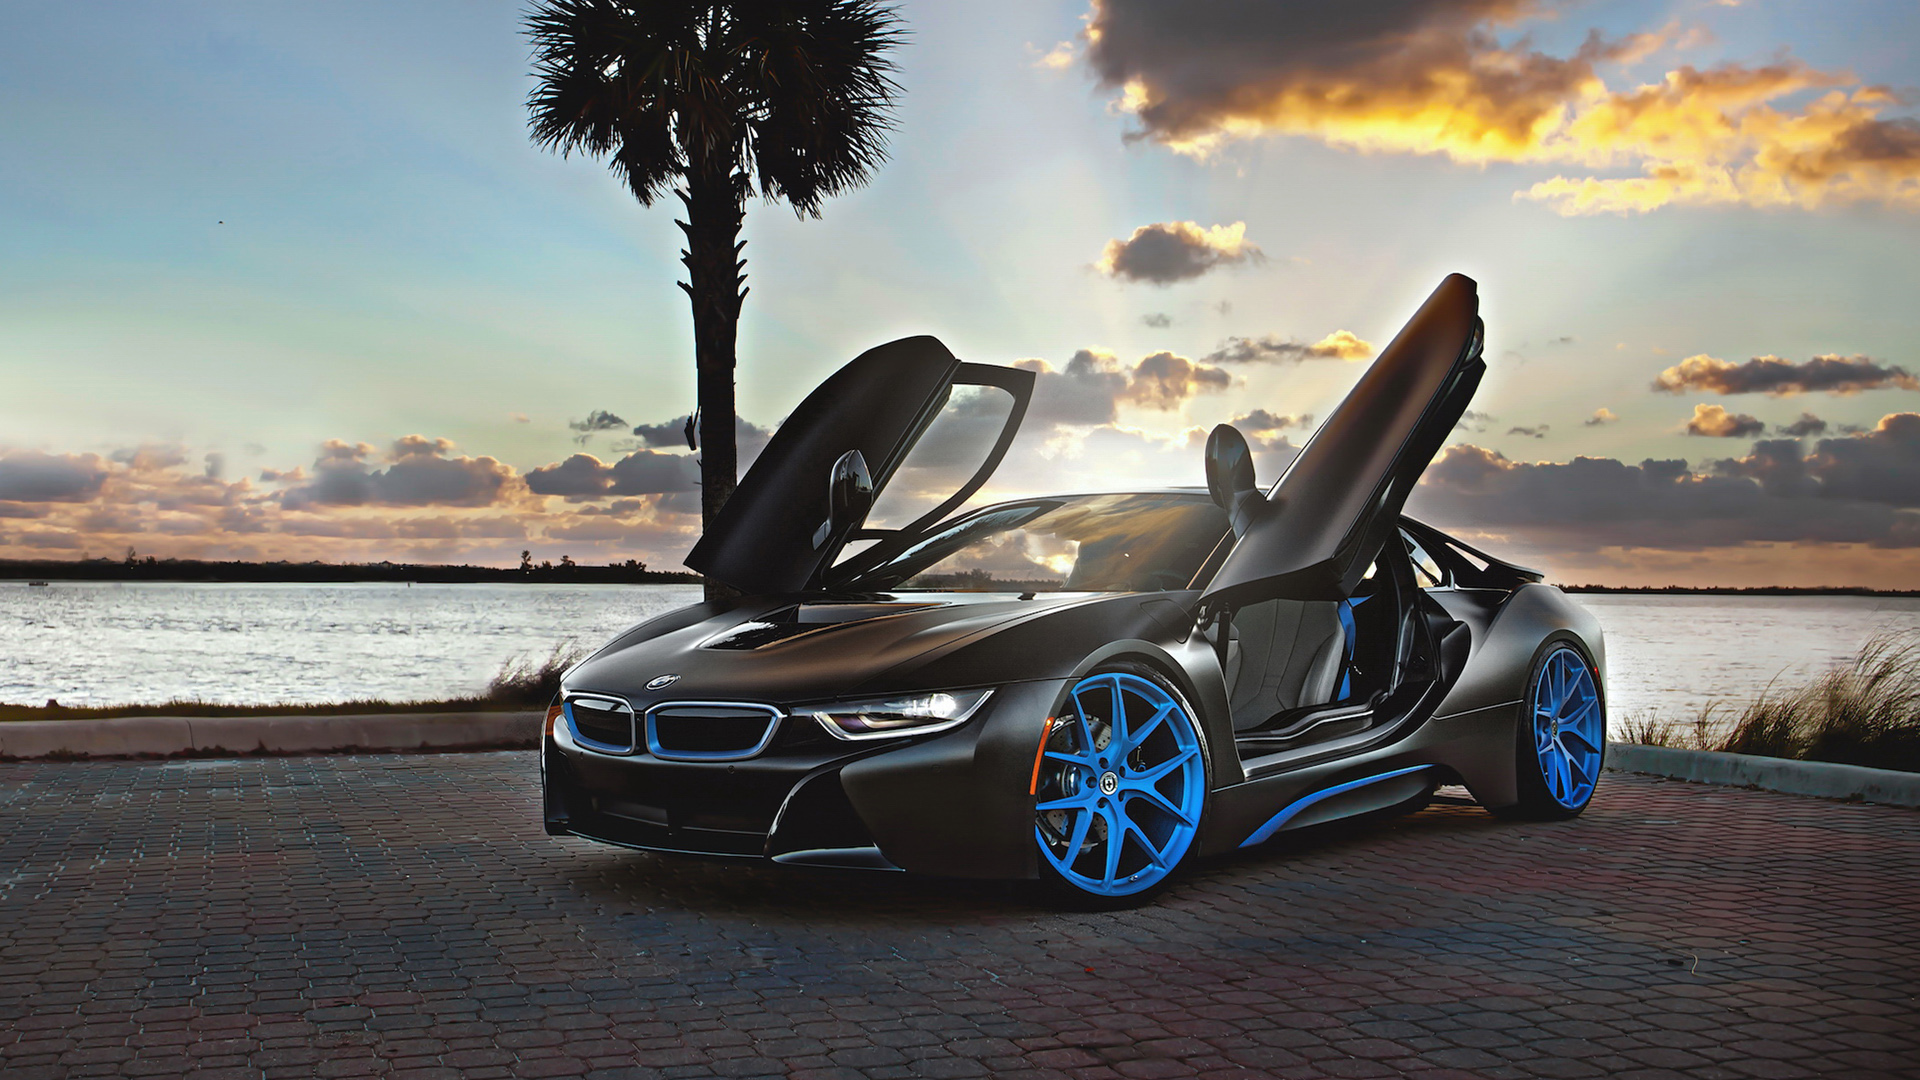 Permalink to Bmw Car Images Hd